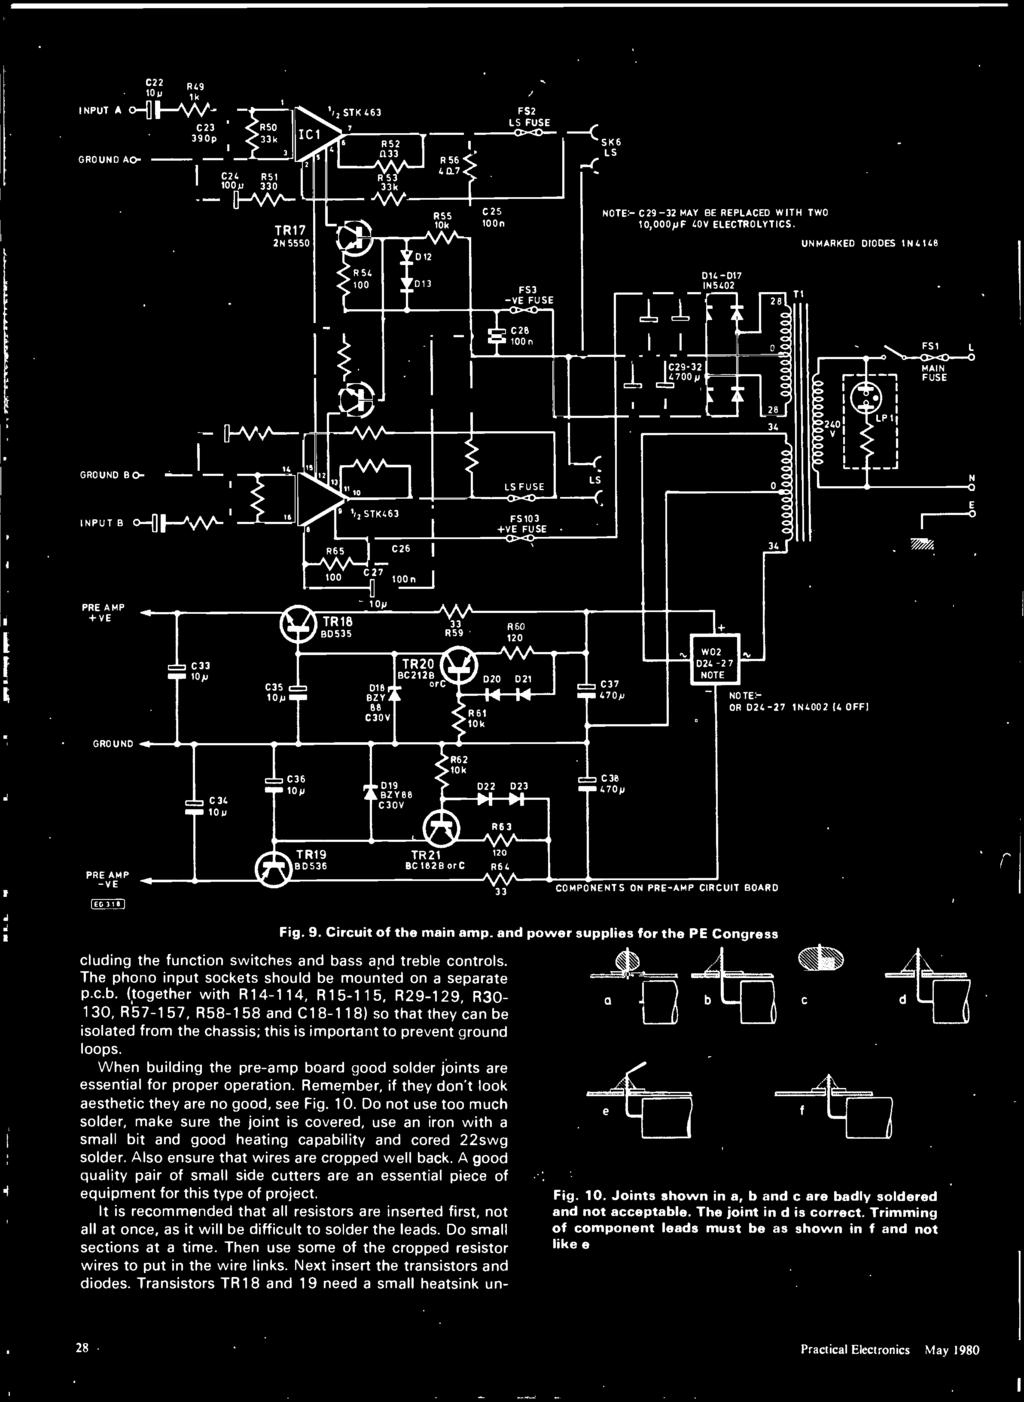 Build Understand And Program Your Own Computer For Only A Small Viscount Caravan Wiring Diagram M 88 C306 Tr20 Bc2126 Orc 33 R59 R61 10k R 60 120 D20 021 14